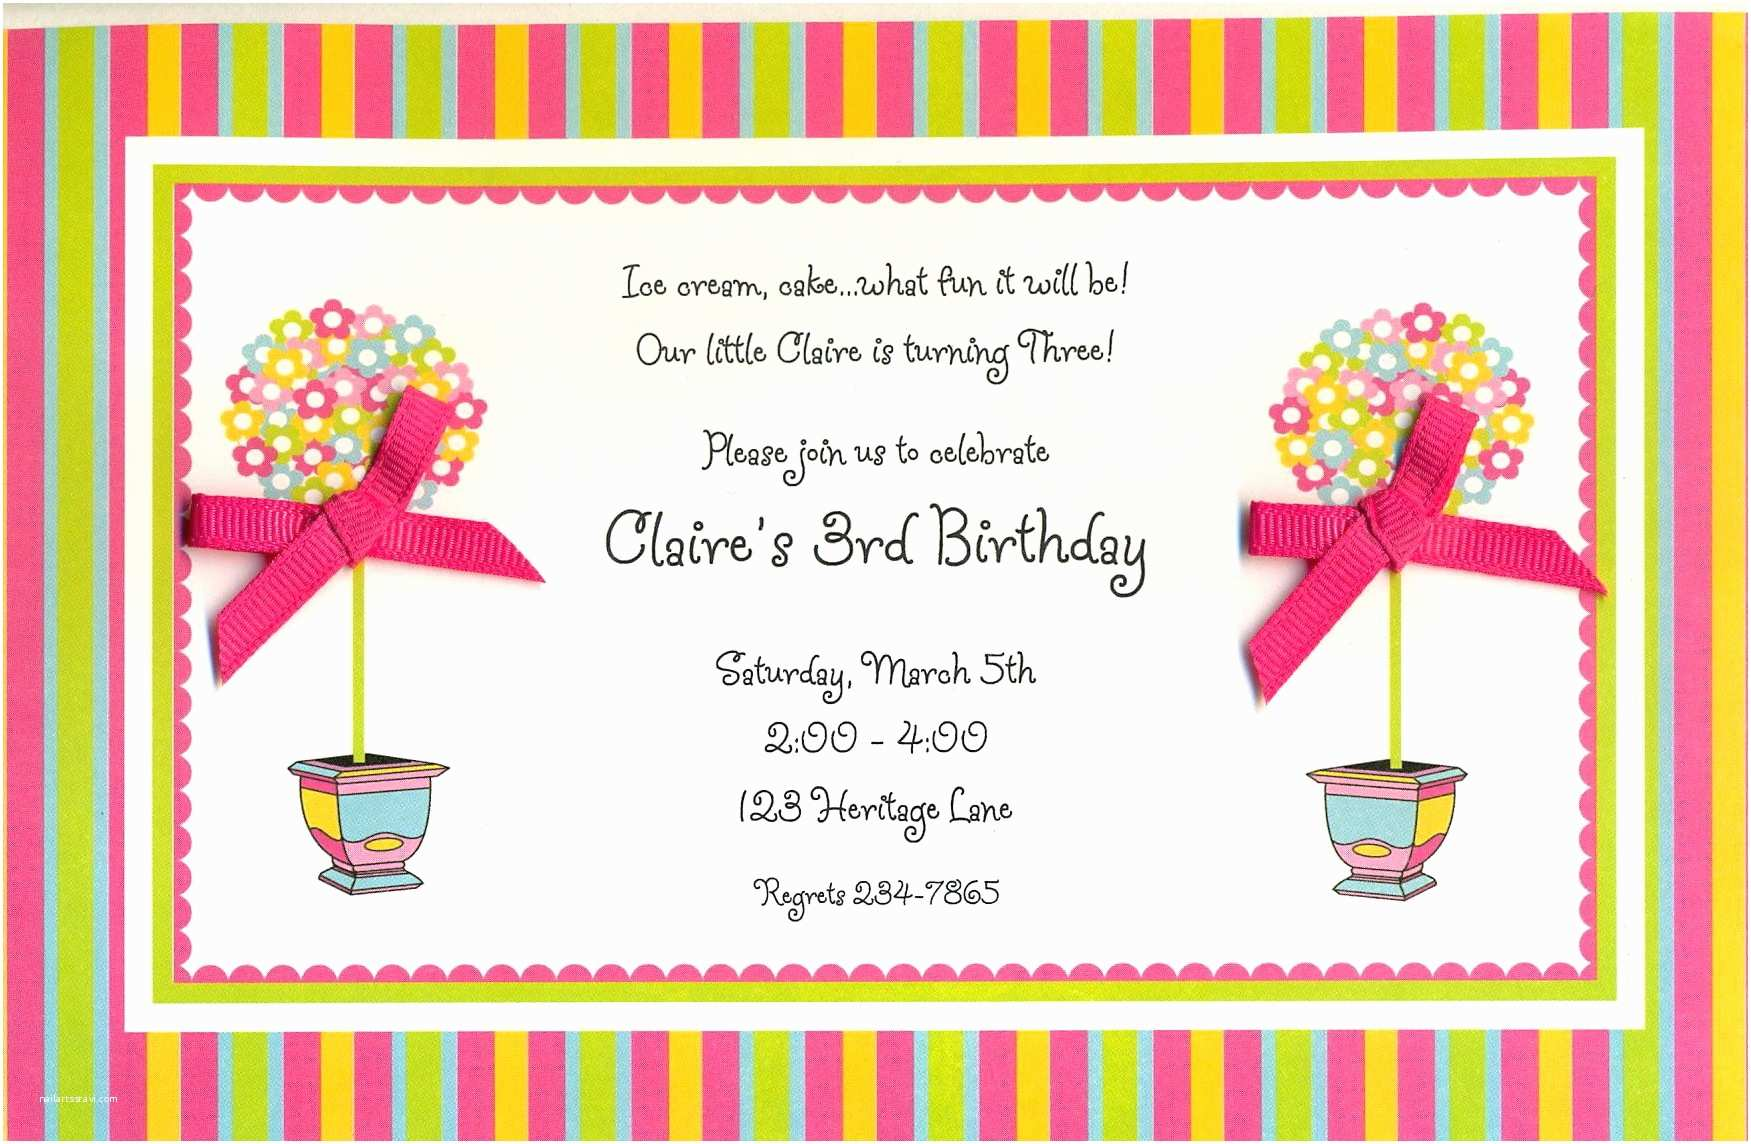 Birthday Invitation Text Birthday Dinner Party Invitation Wording